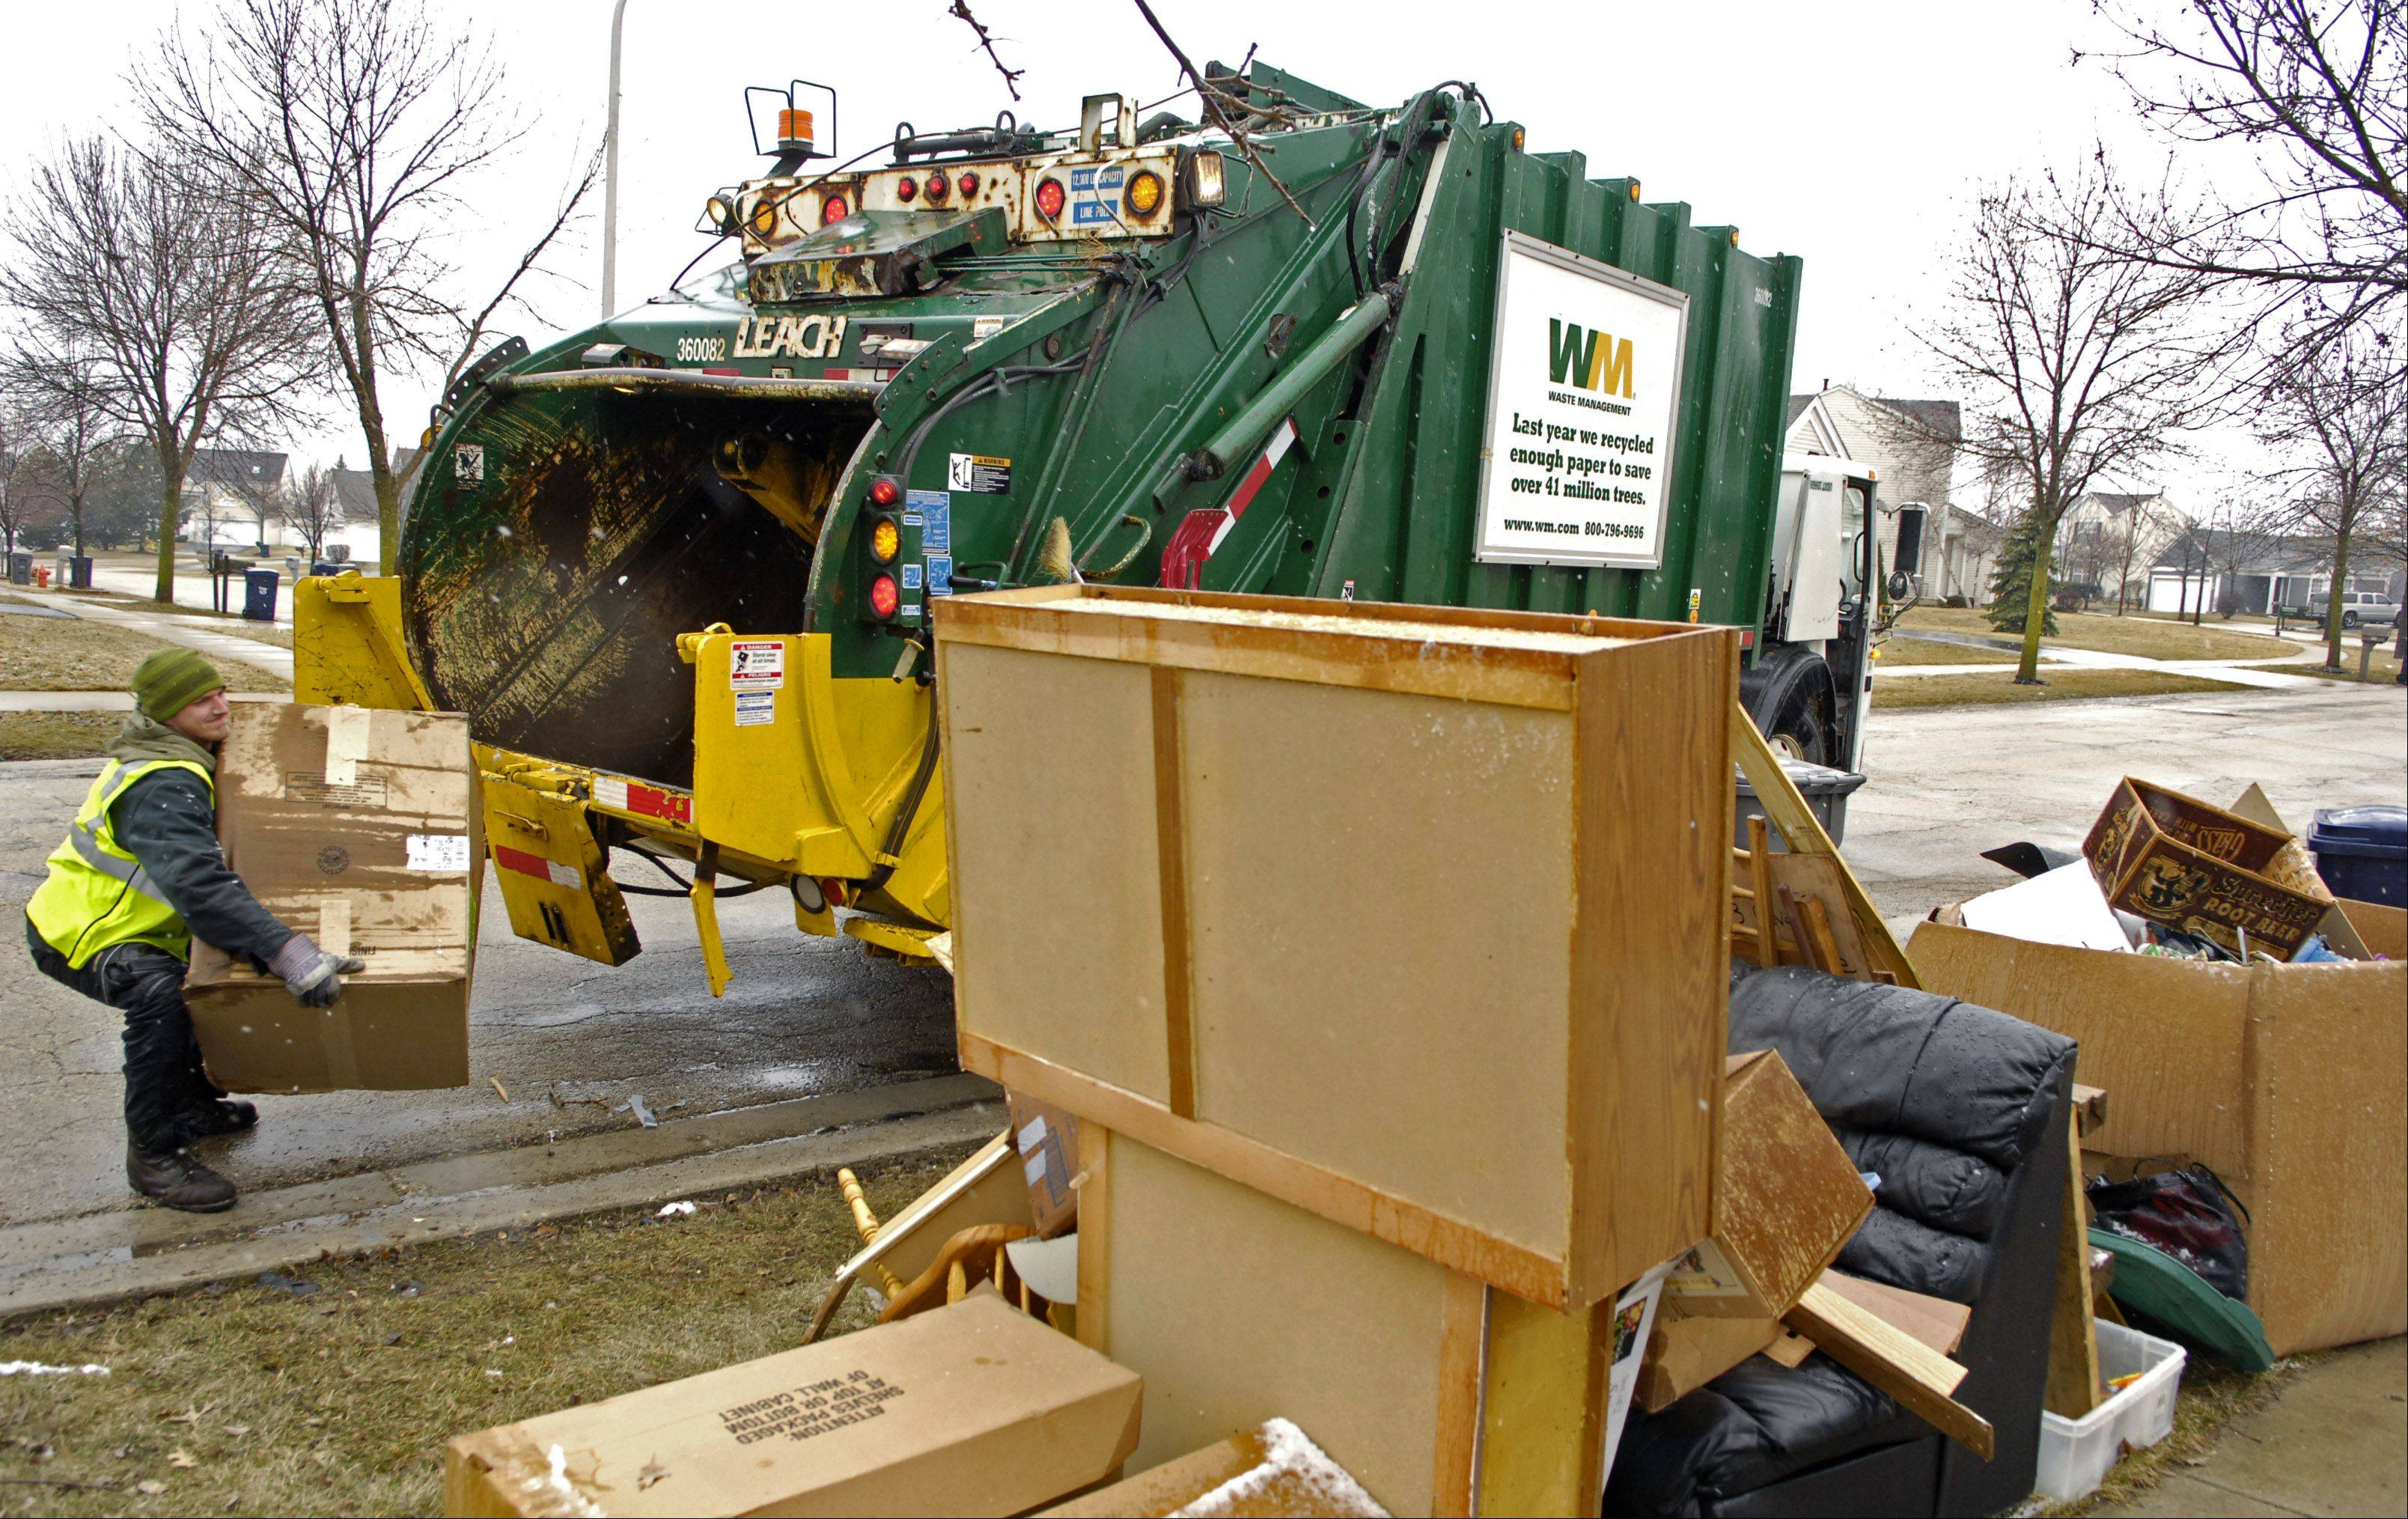 Rolling Meadows is one of only a few Northwest suburbs that does not currently outsource its garbage collection, like here in Elgin.